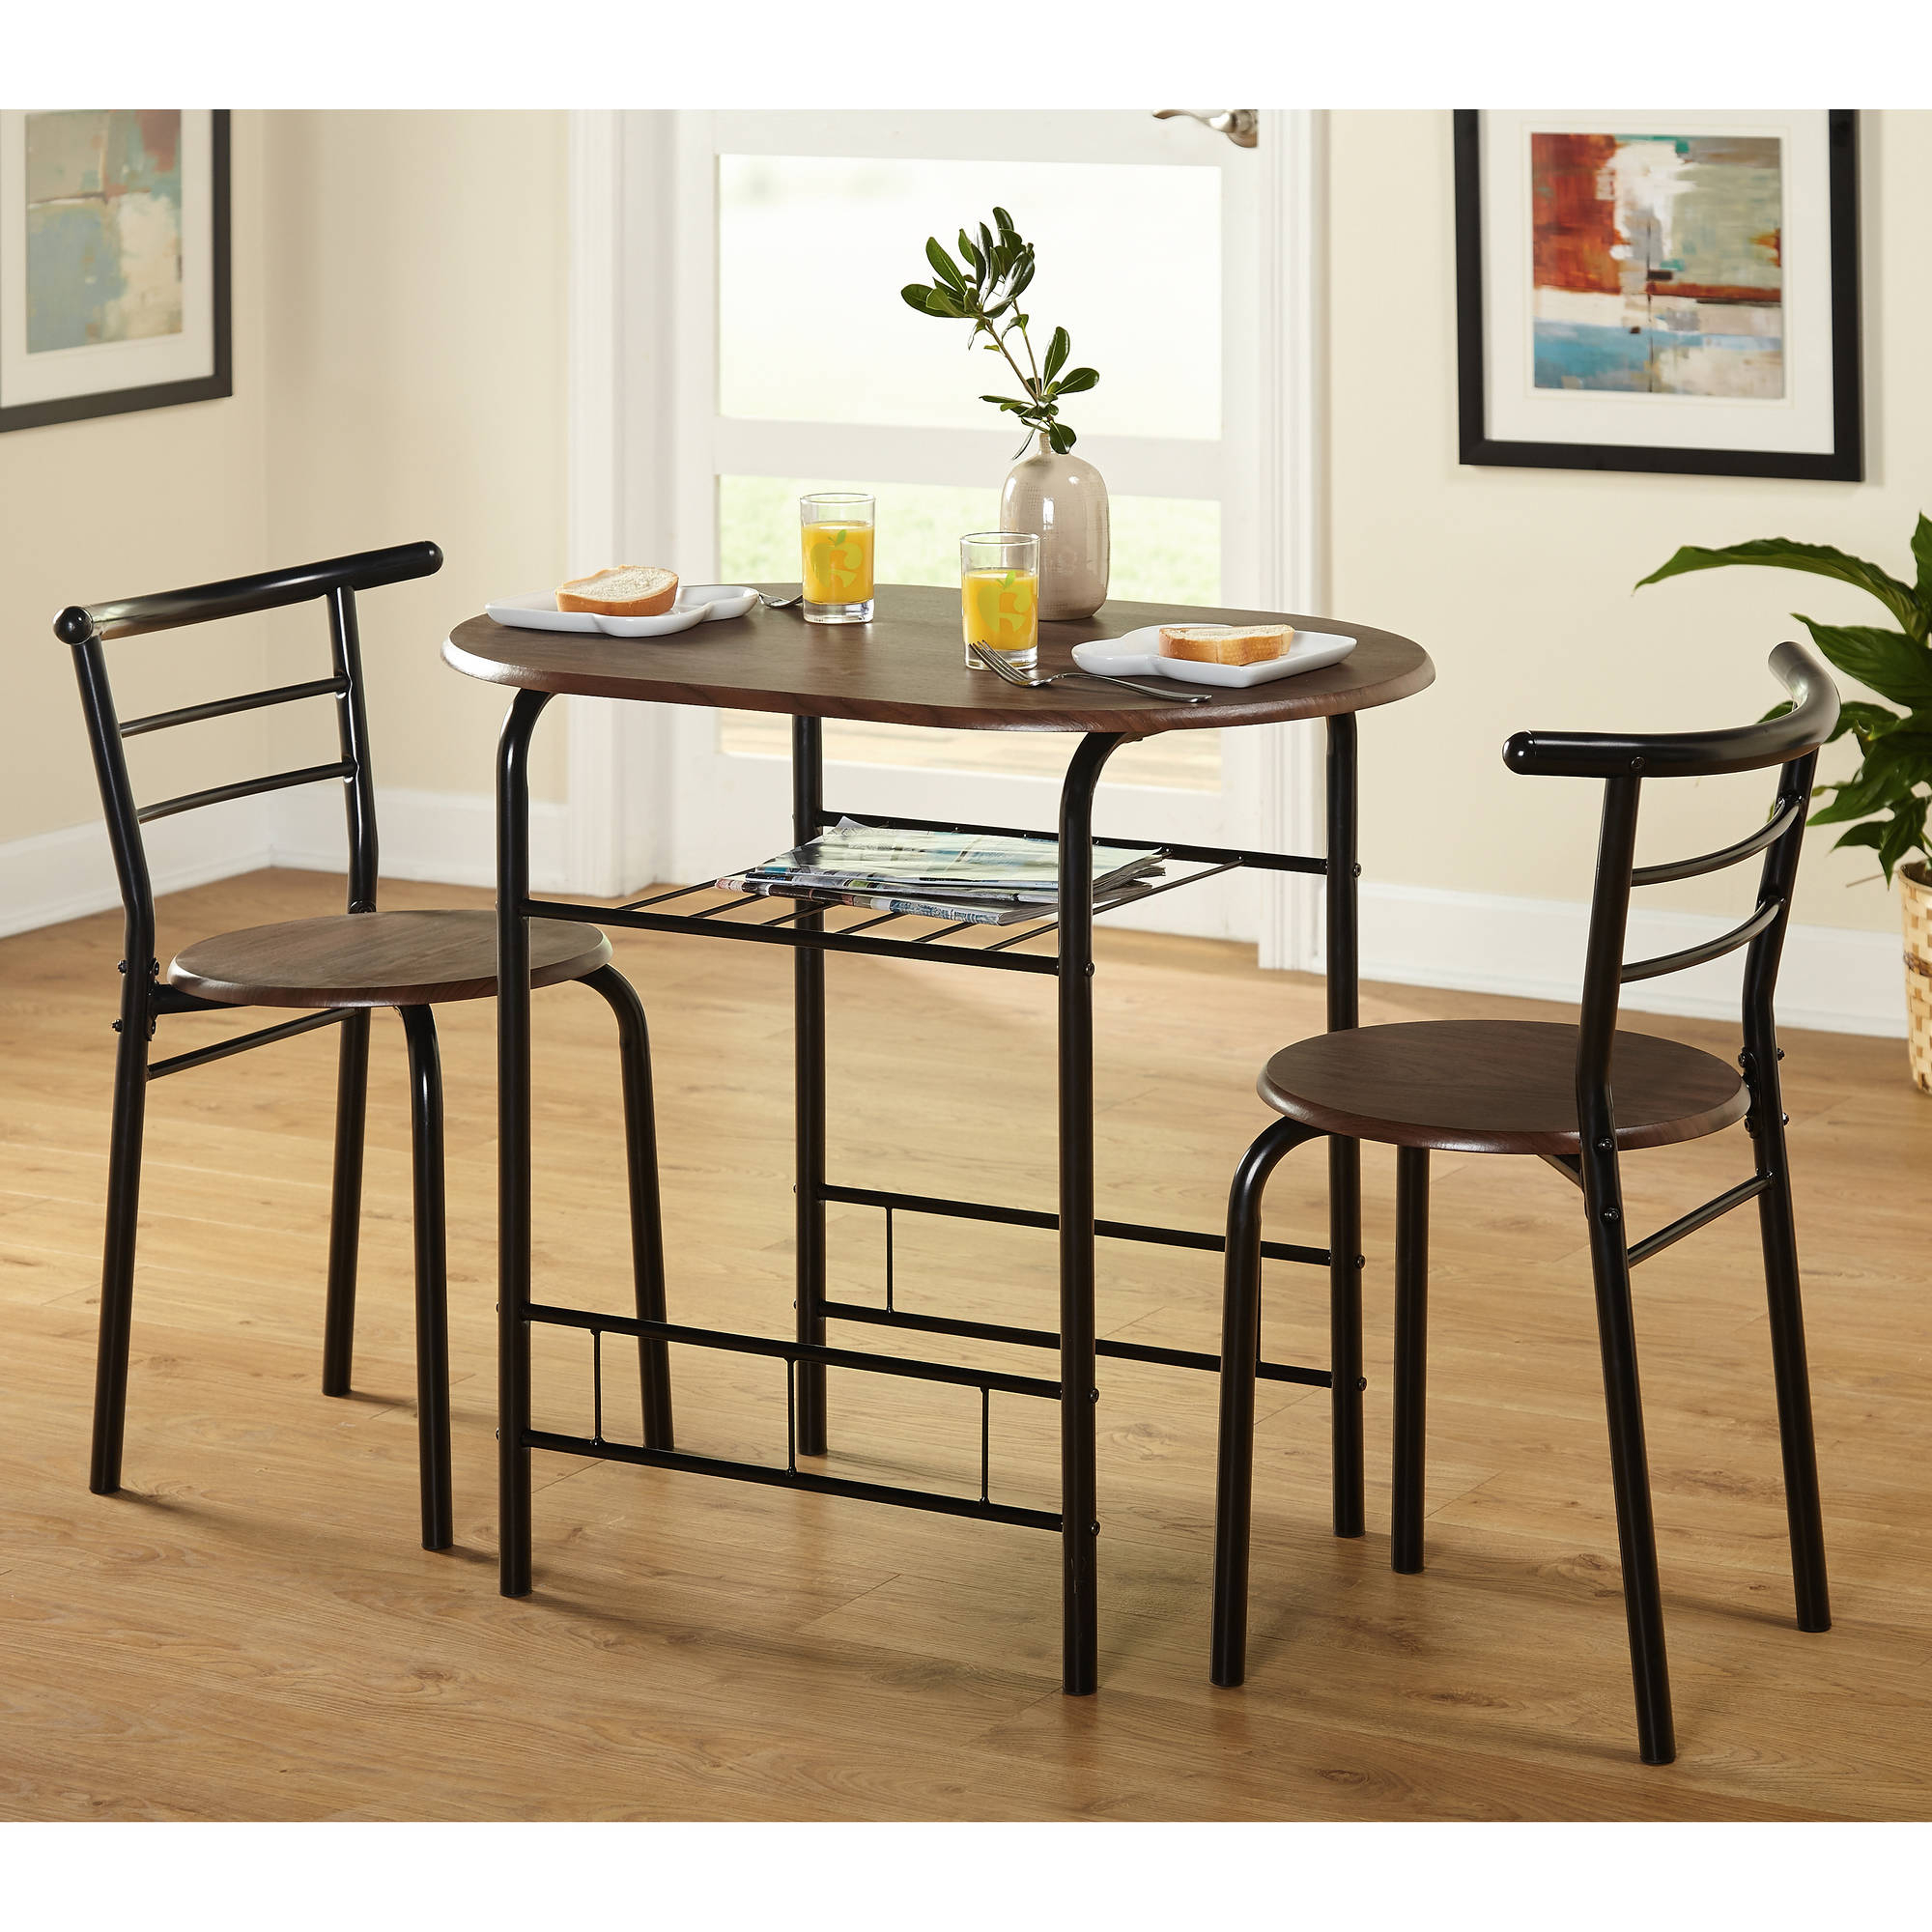 3 Piece Breakfast Dining Sets Pertaining To Fashionable Tms 3 Piece Bistro Dining Set (Gallery 5 of 20)